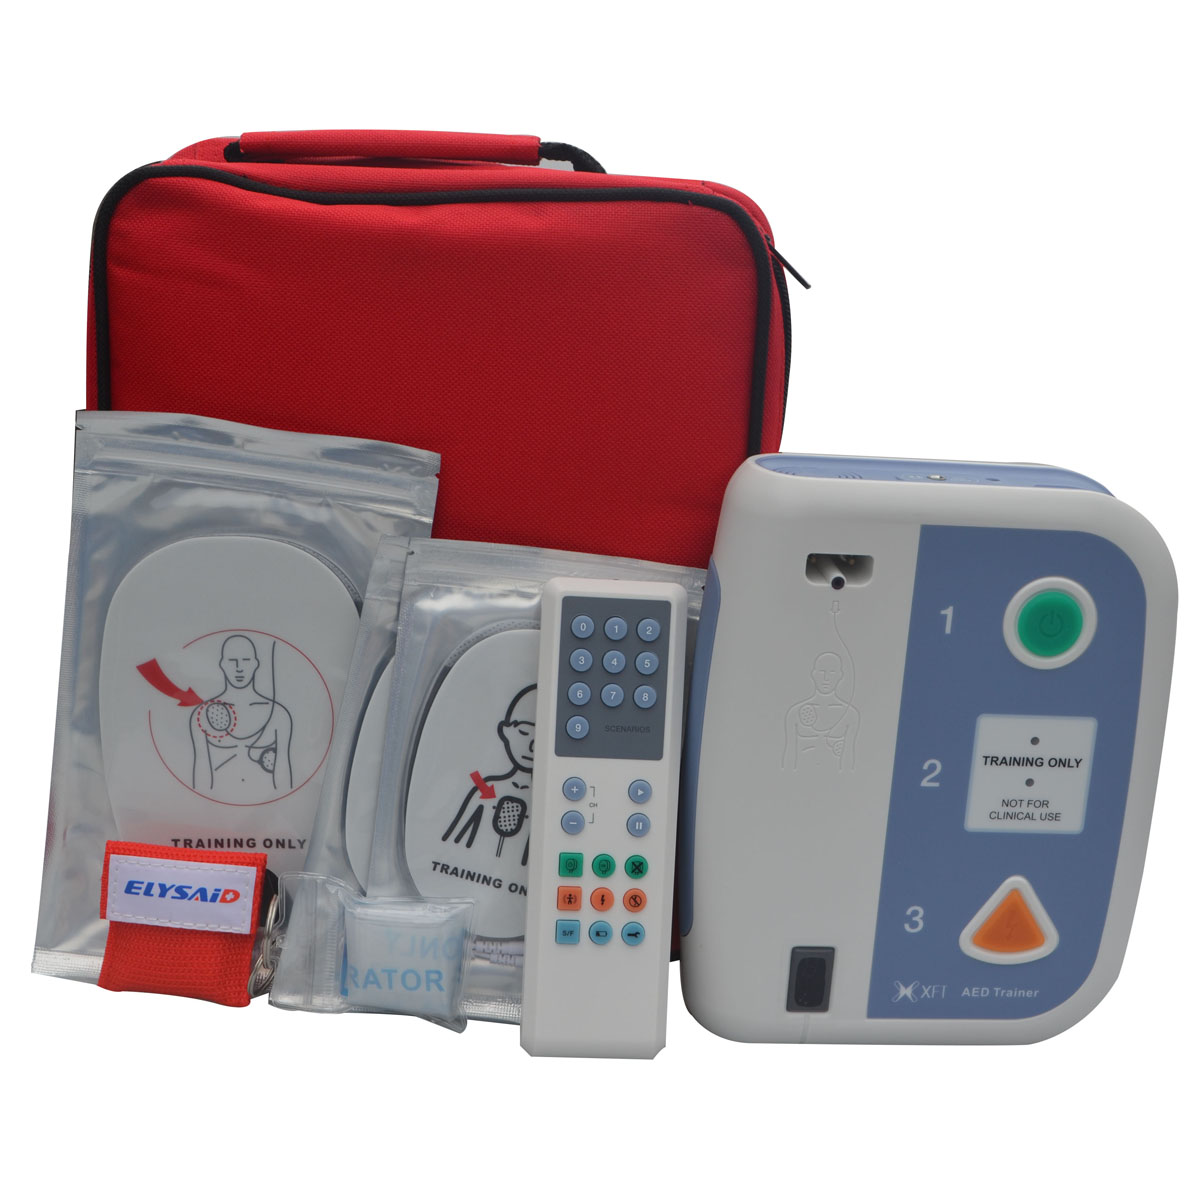 AED Simulated Defibrillator Universal Trainer First Aid Training Machine + 2pcs CPR Face Shield Mask In Spanish & Portuguese